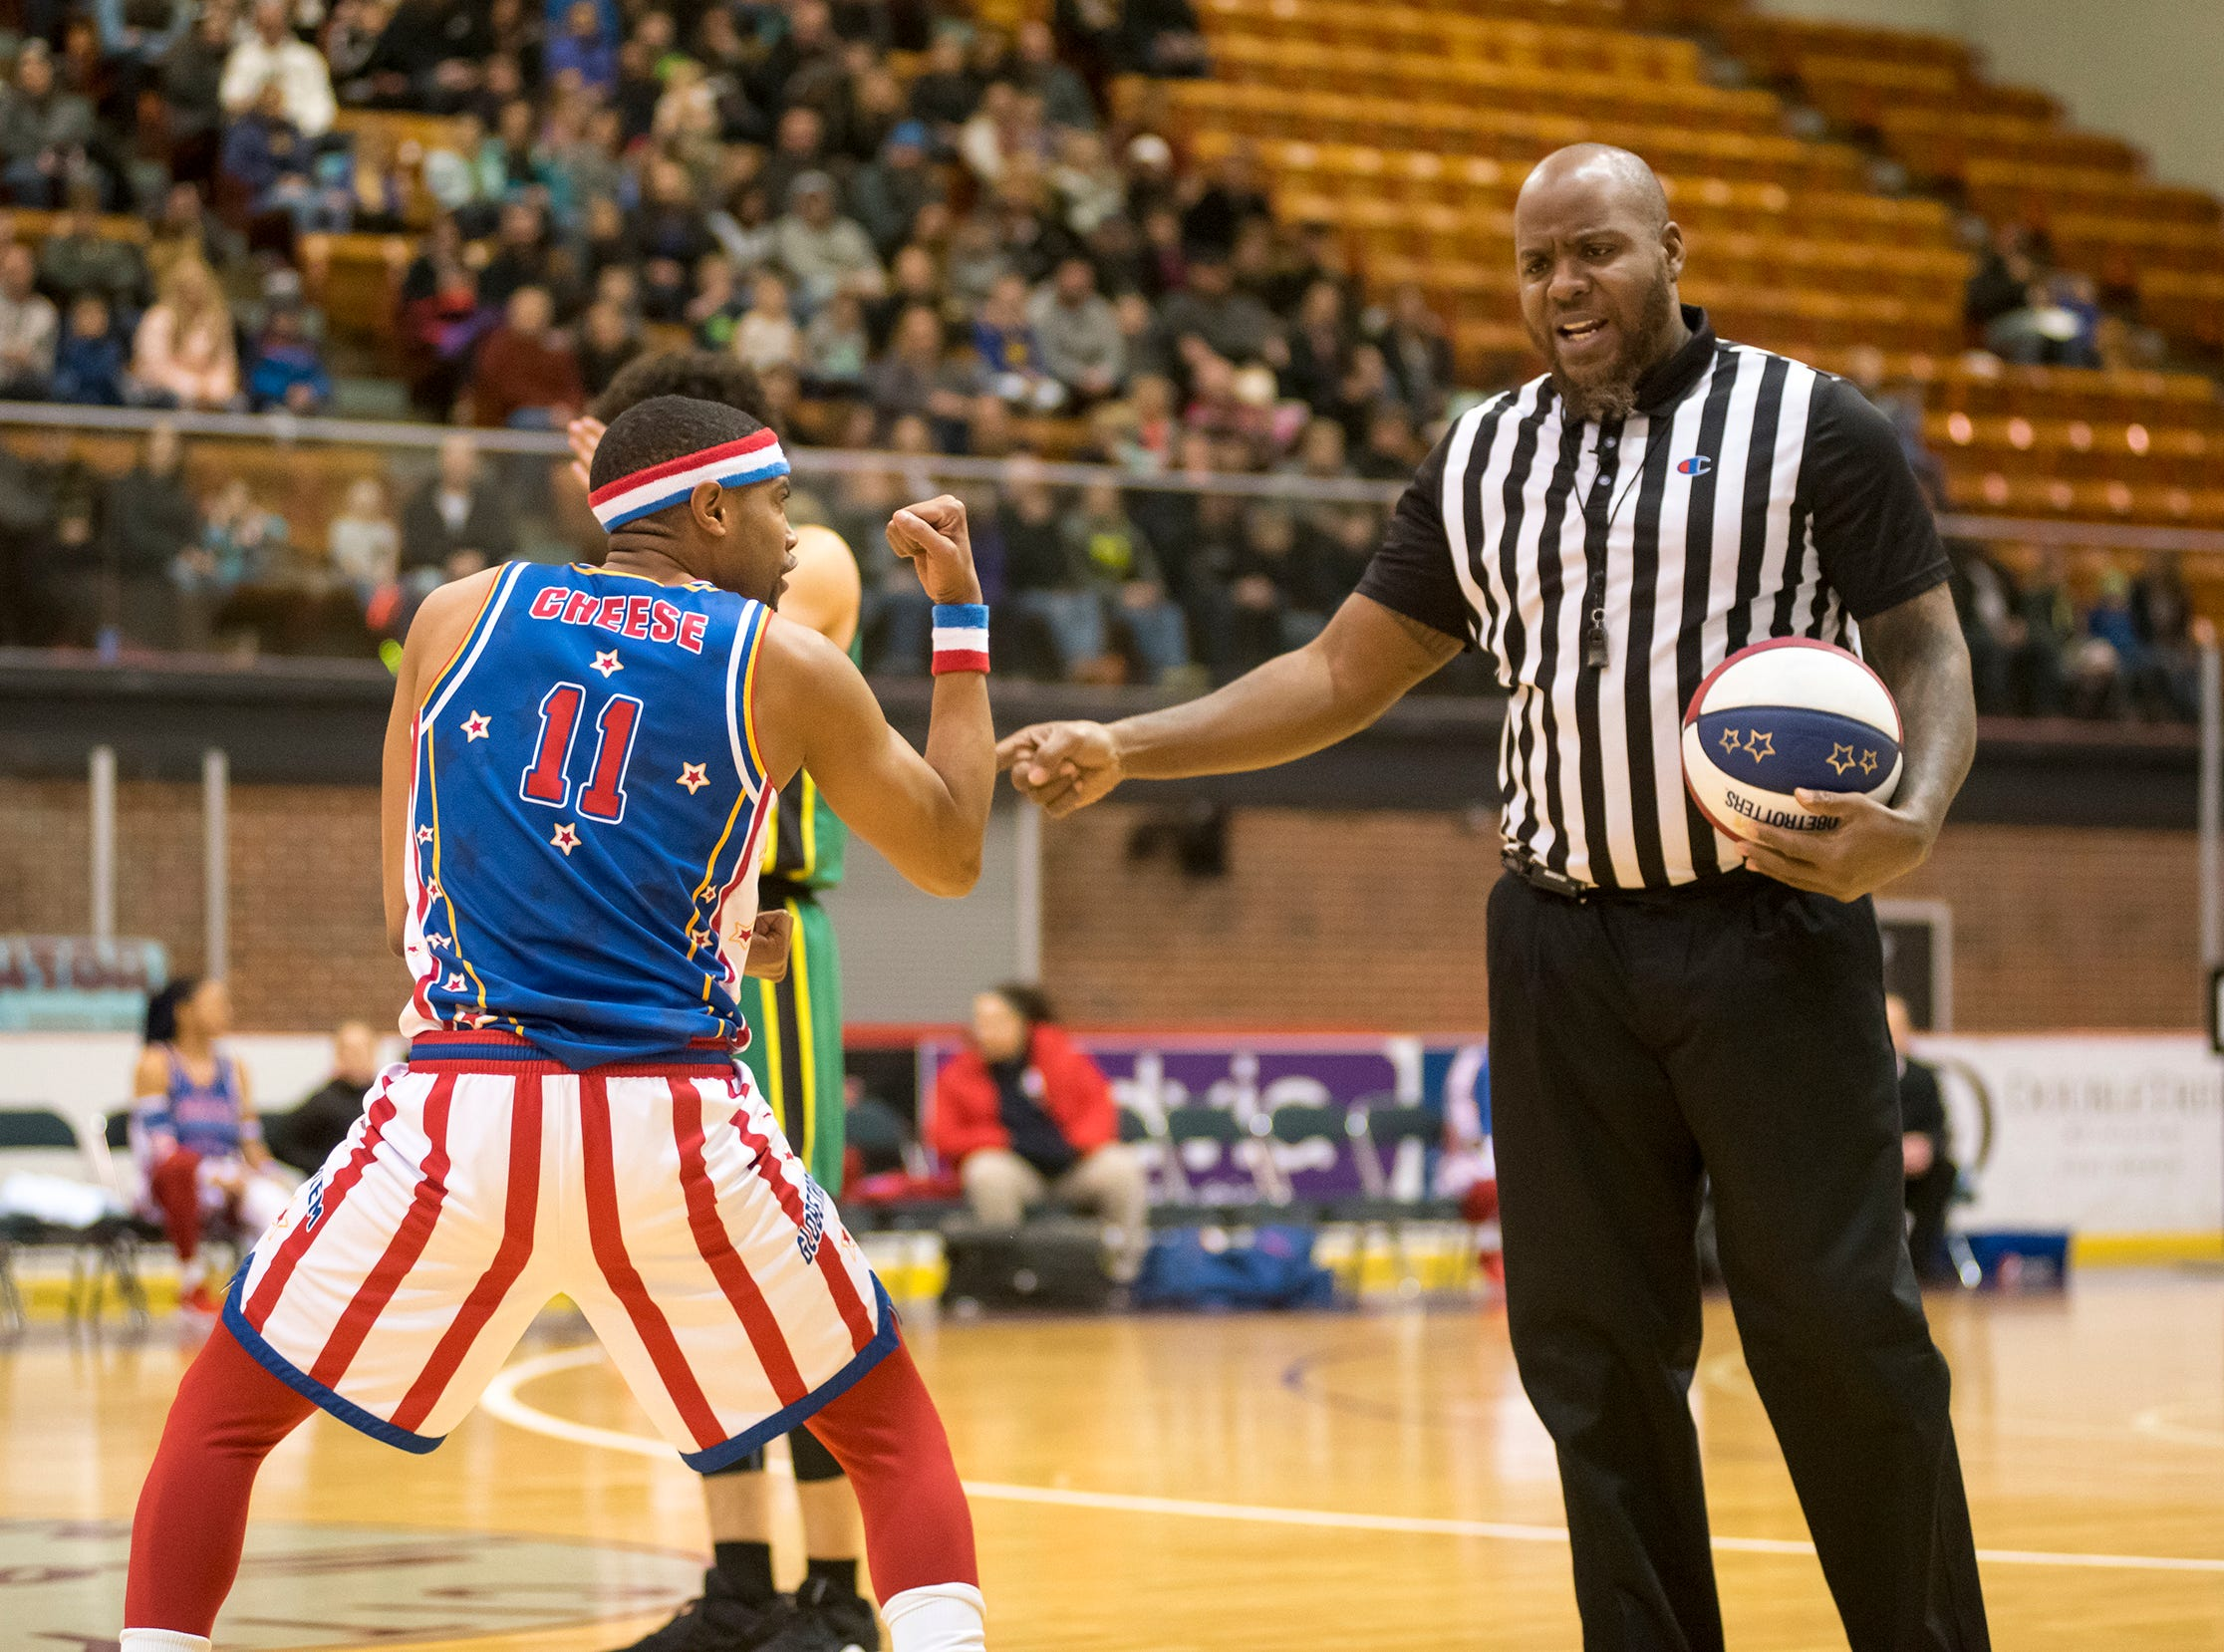 Harlem Globetrotters guard Cheese teases a referree during Globetrotters' game against the Washington Generals Saturday, Feb. 2, 2019 at McMorran Arena.